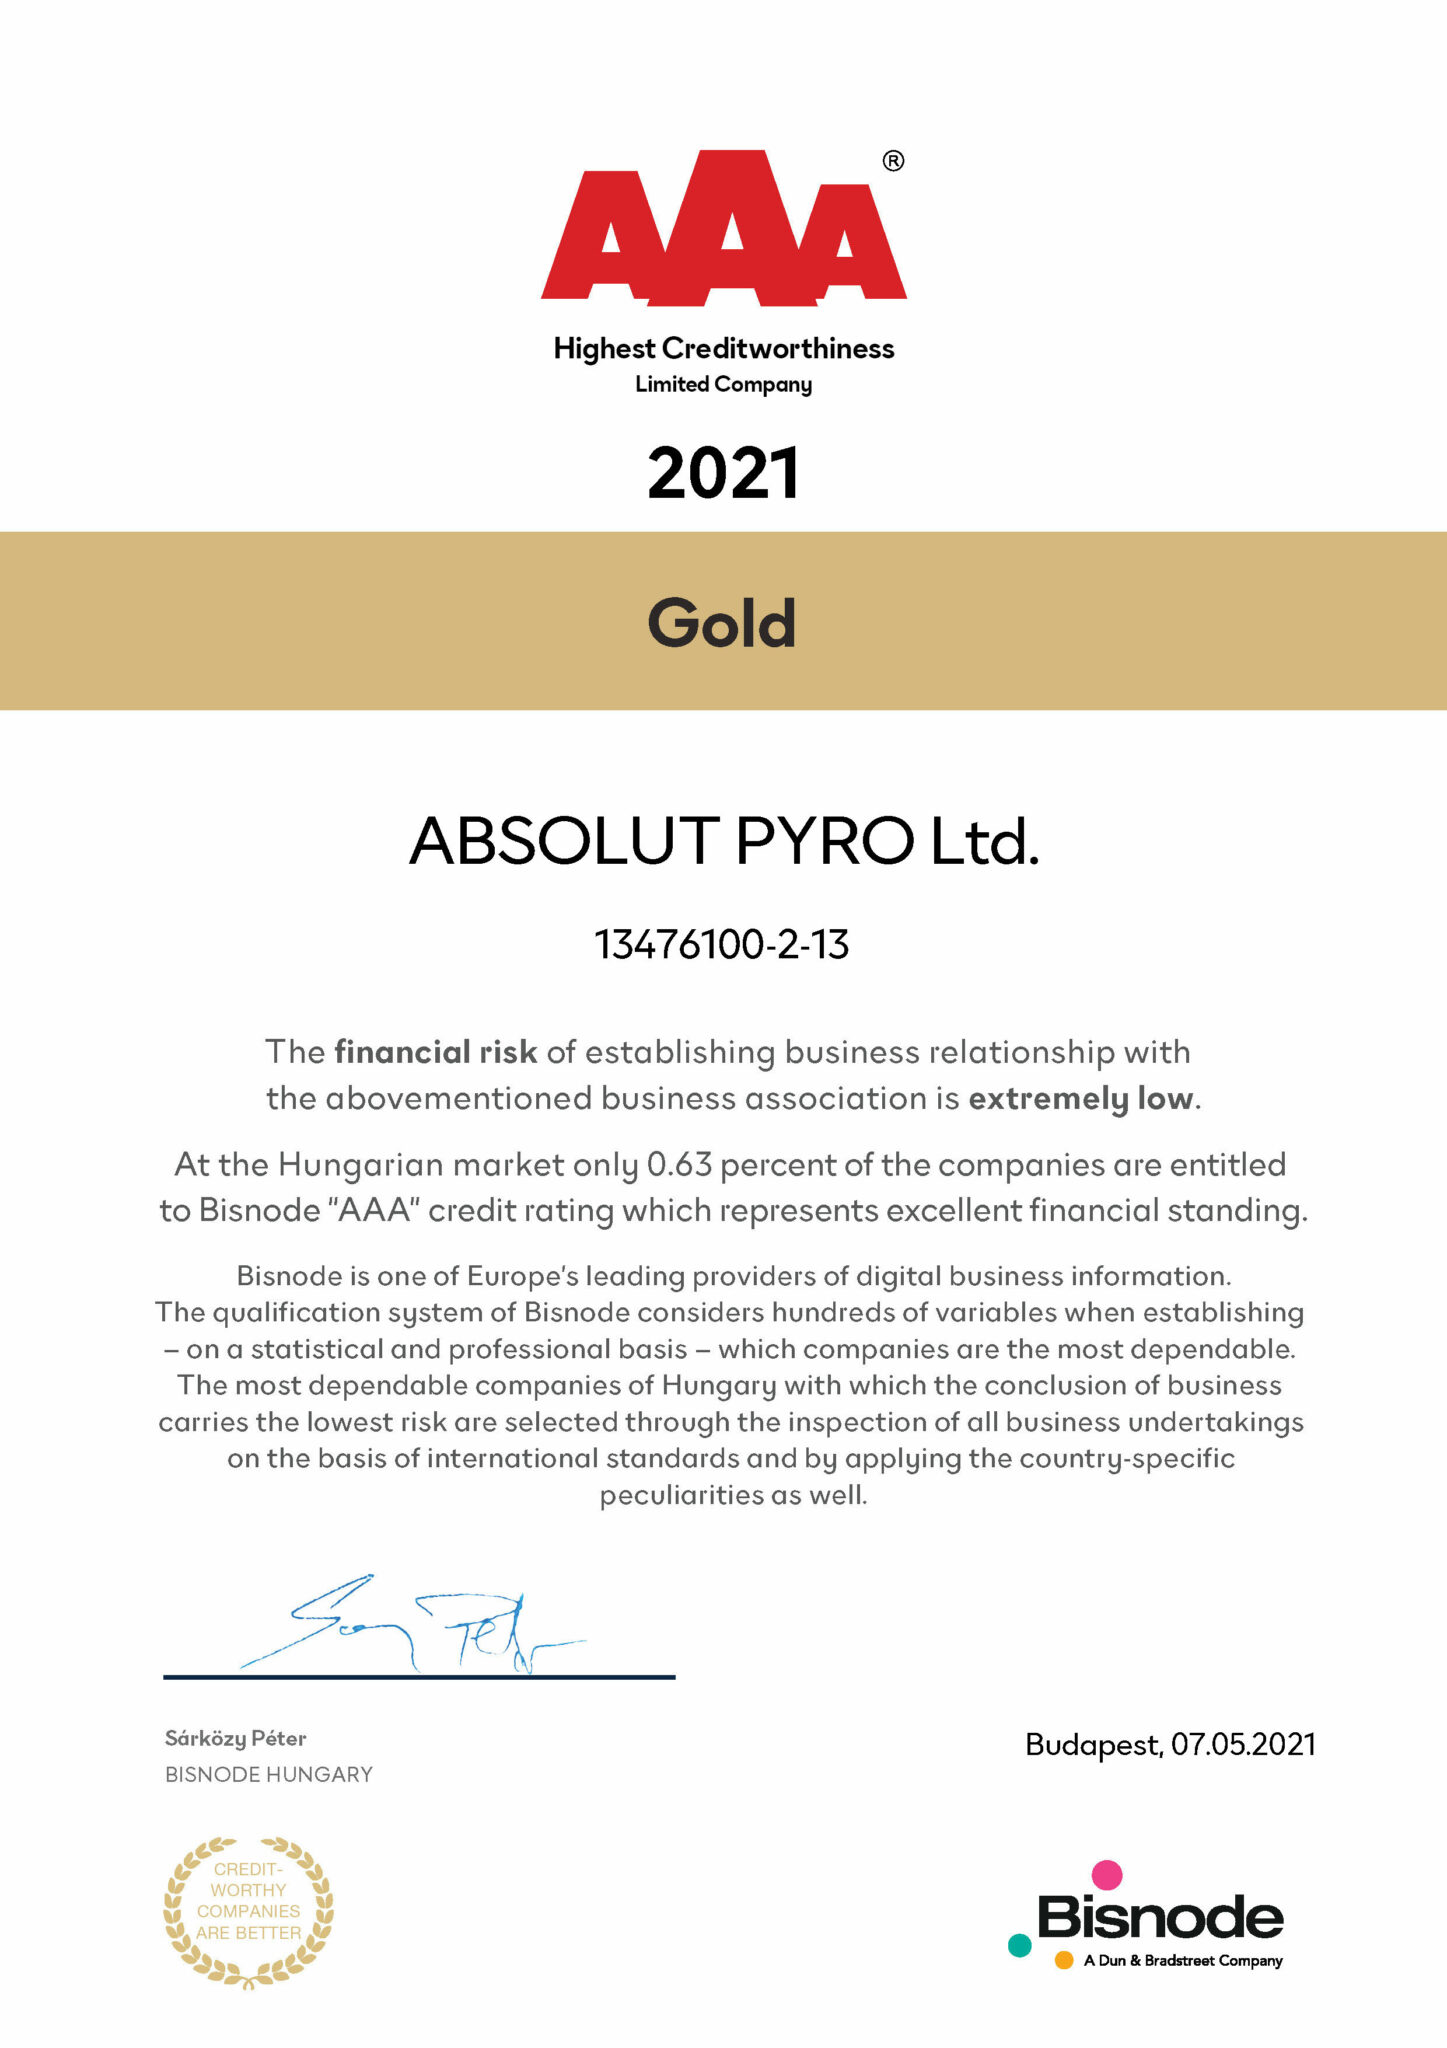 Bisnode gold certificate - Absolut Pyro Ltd. AAA creditworthy company 2021